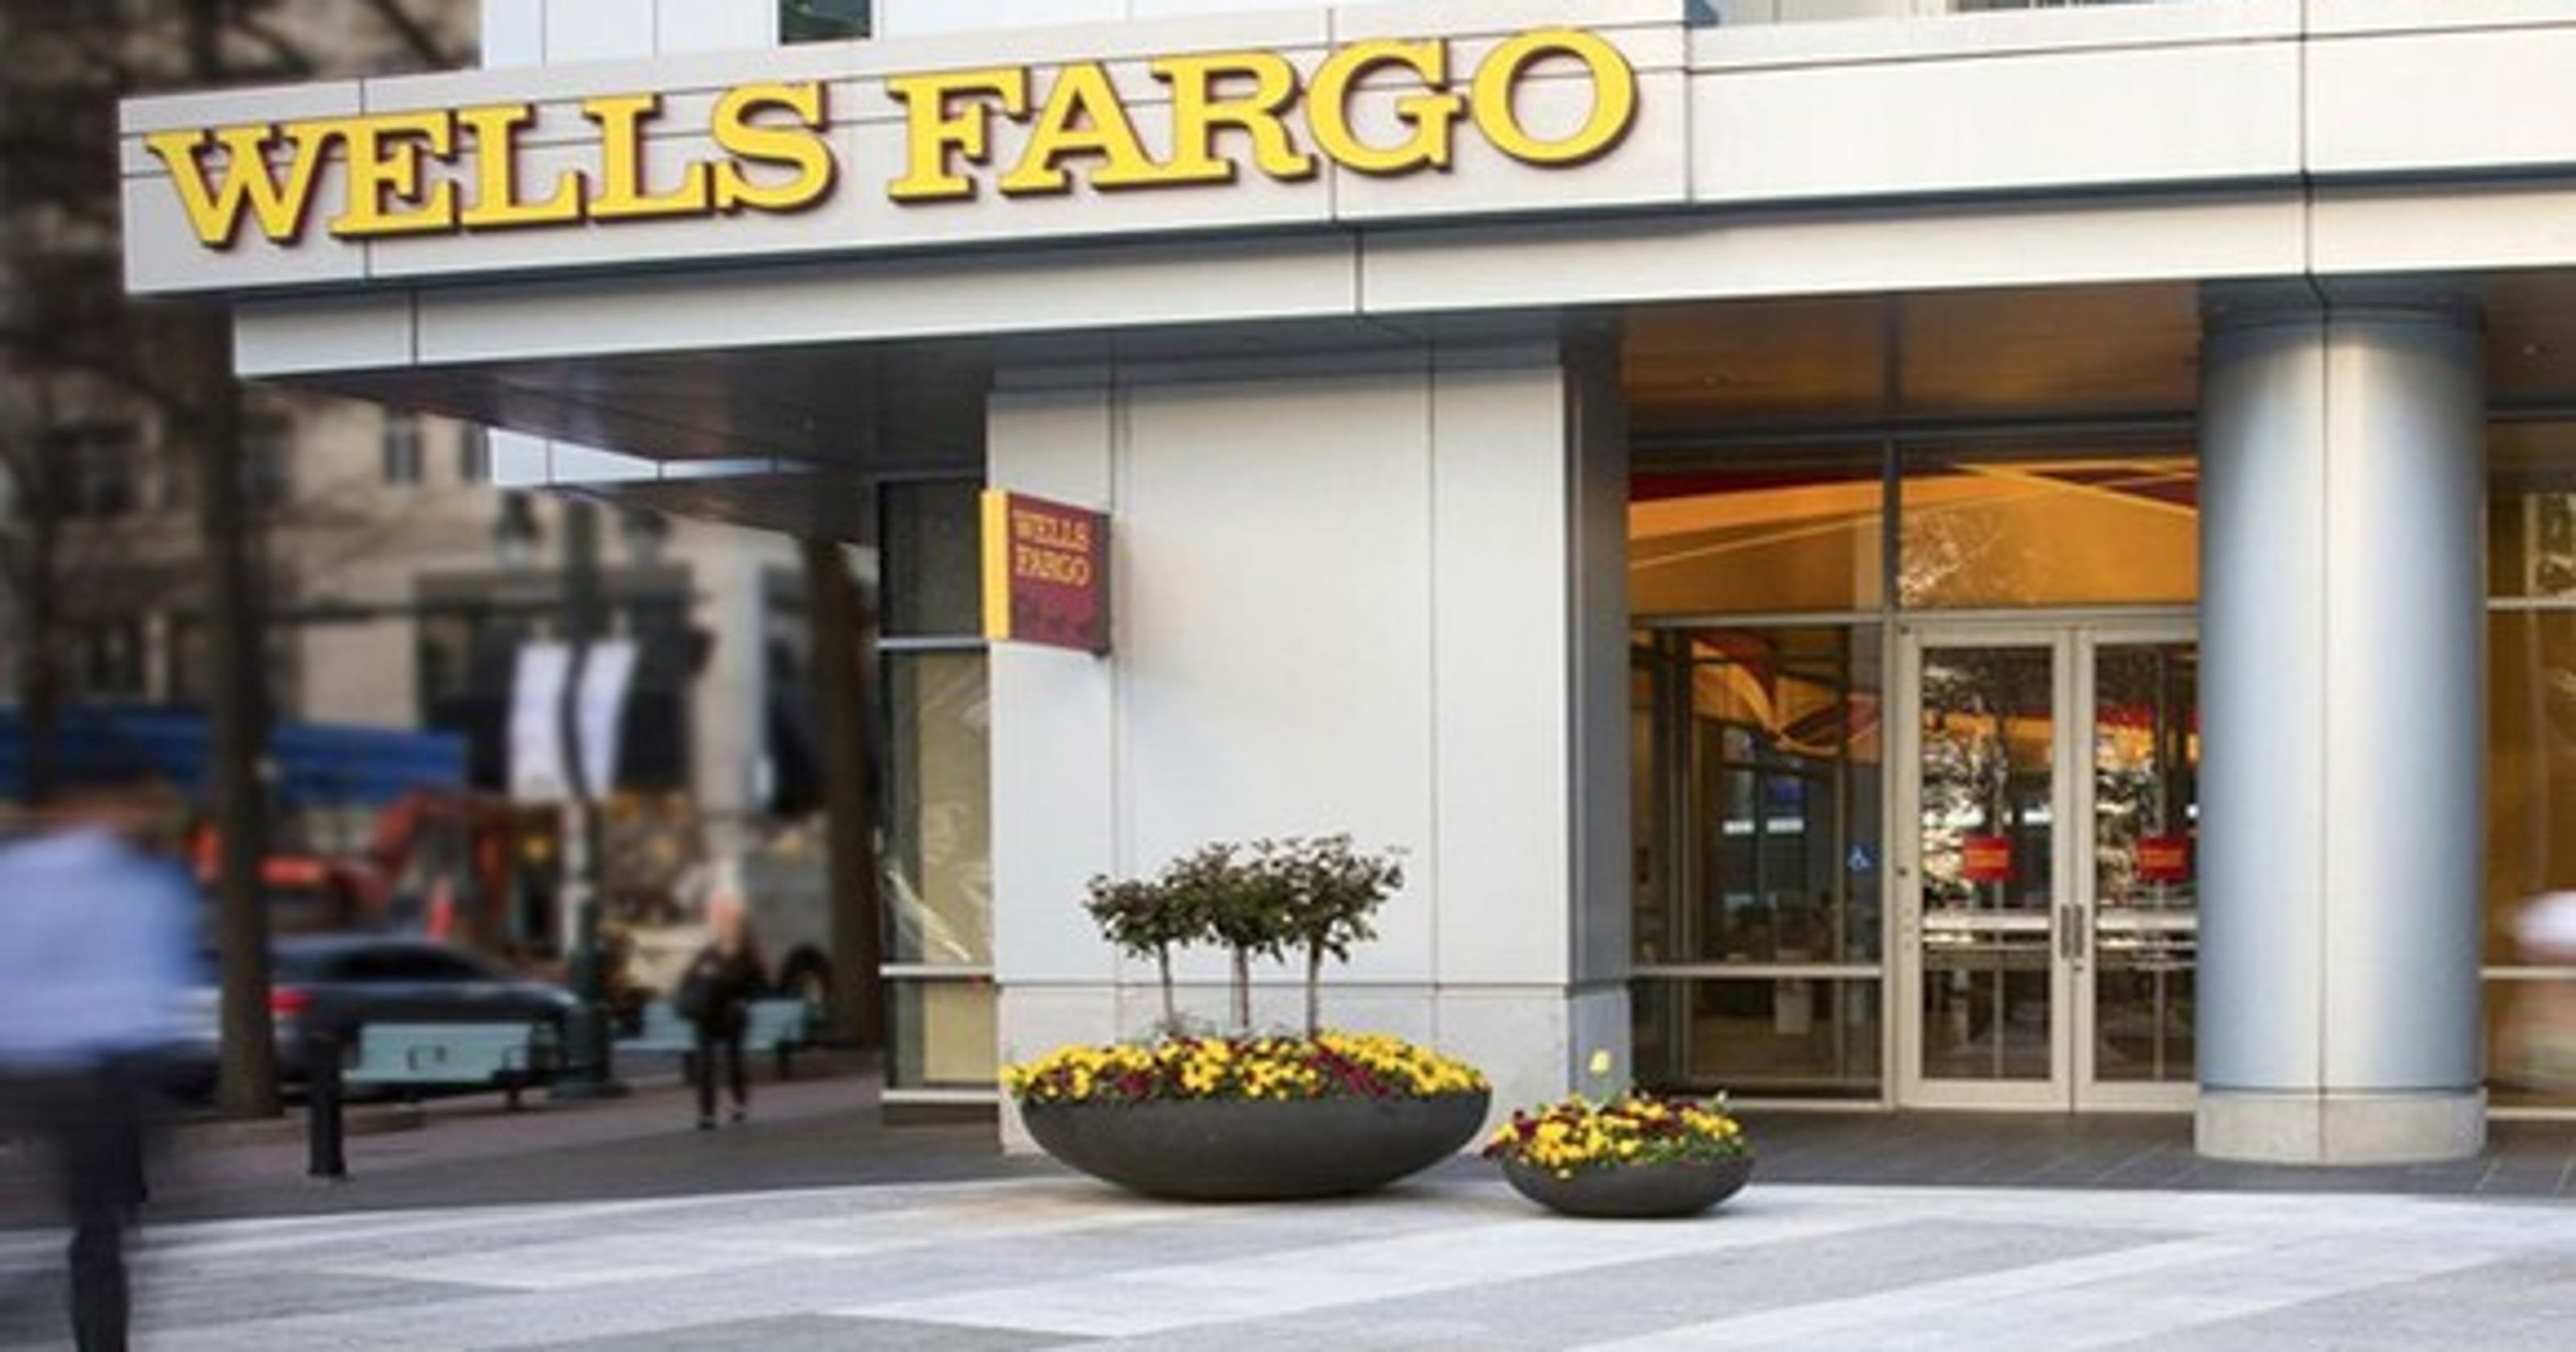 Wells Fargo outage: Issues fixed after paychecks didn't show for some